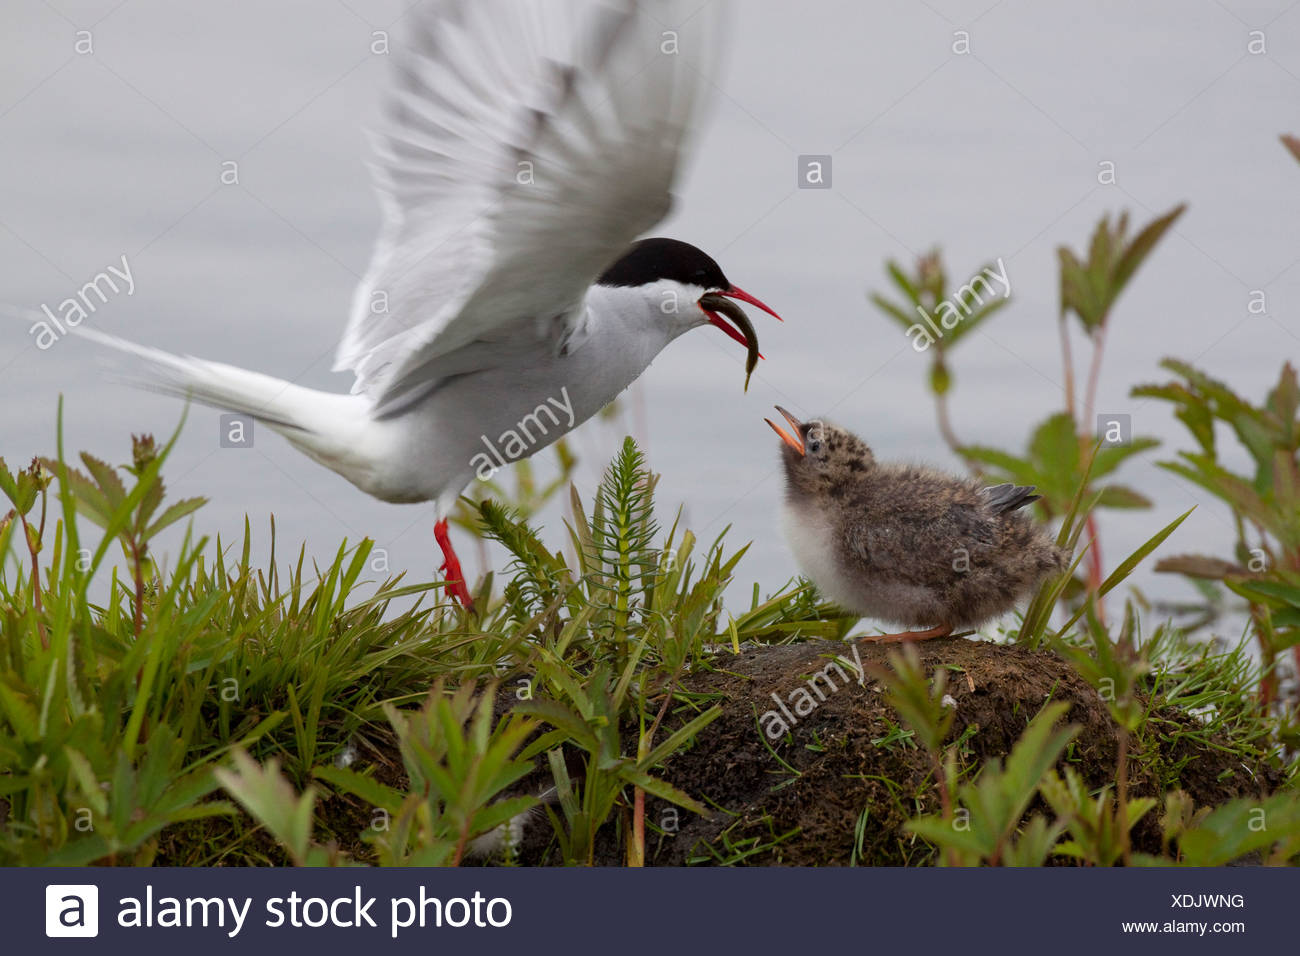 Adult Arctic Tern feeds its chick at Potter Marsh near Anchorage, Alaska - Stock Image